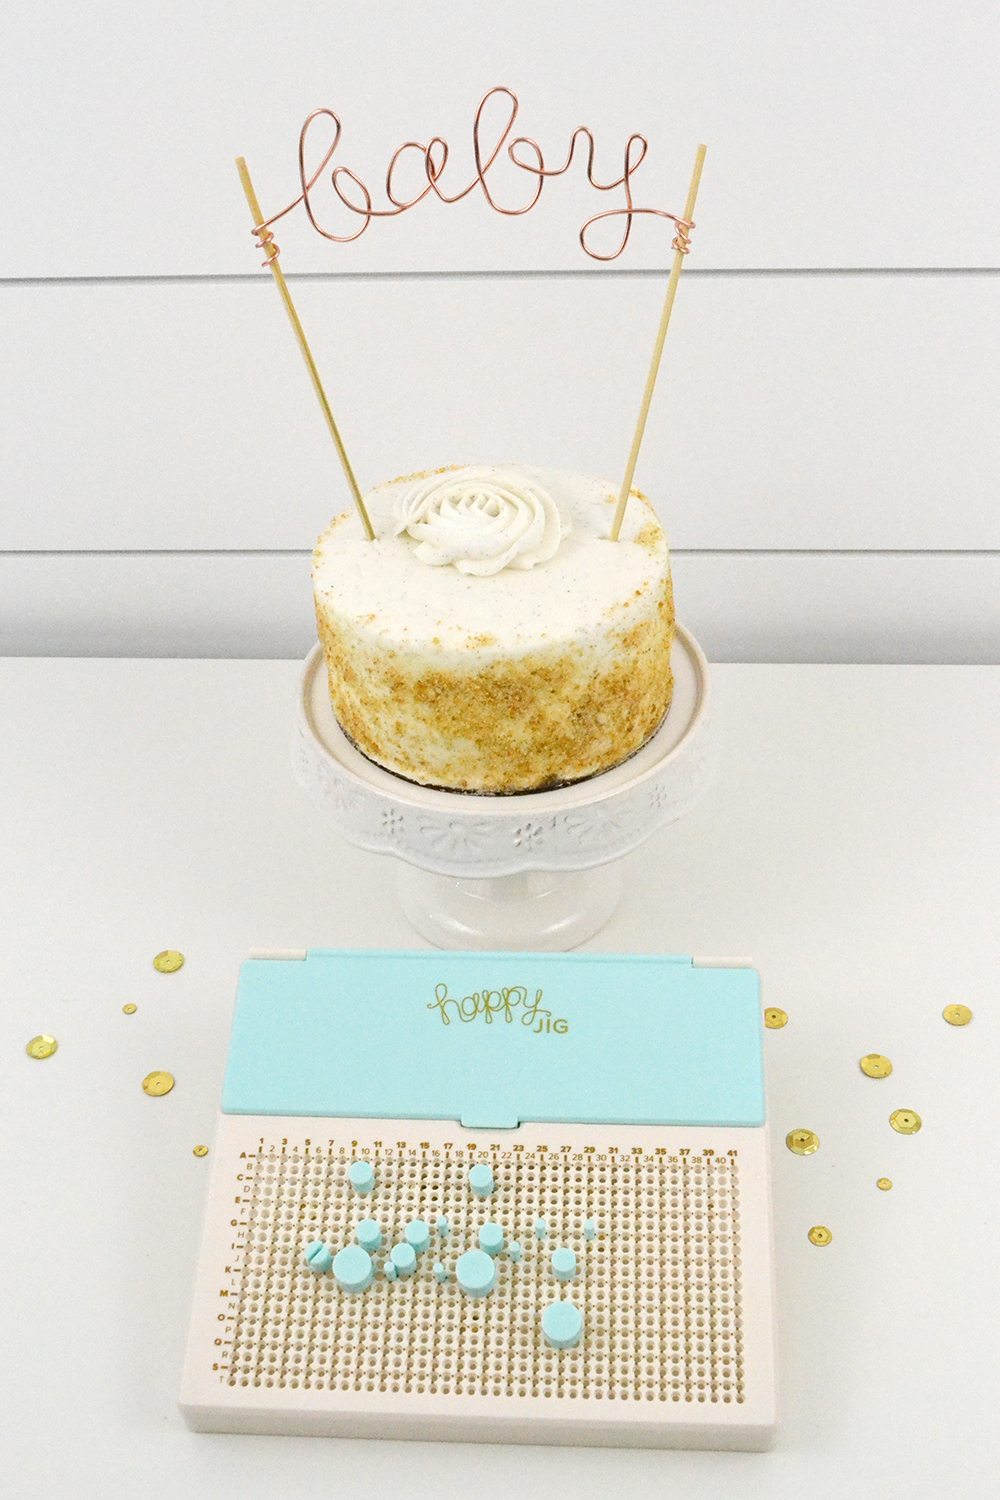 Baby Shower Decor by Aly Dosdall for We R Memory Keepers featuring the Happy Jig